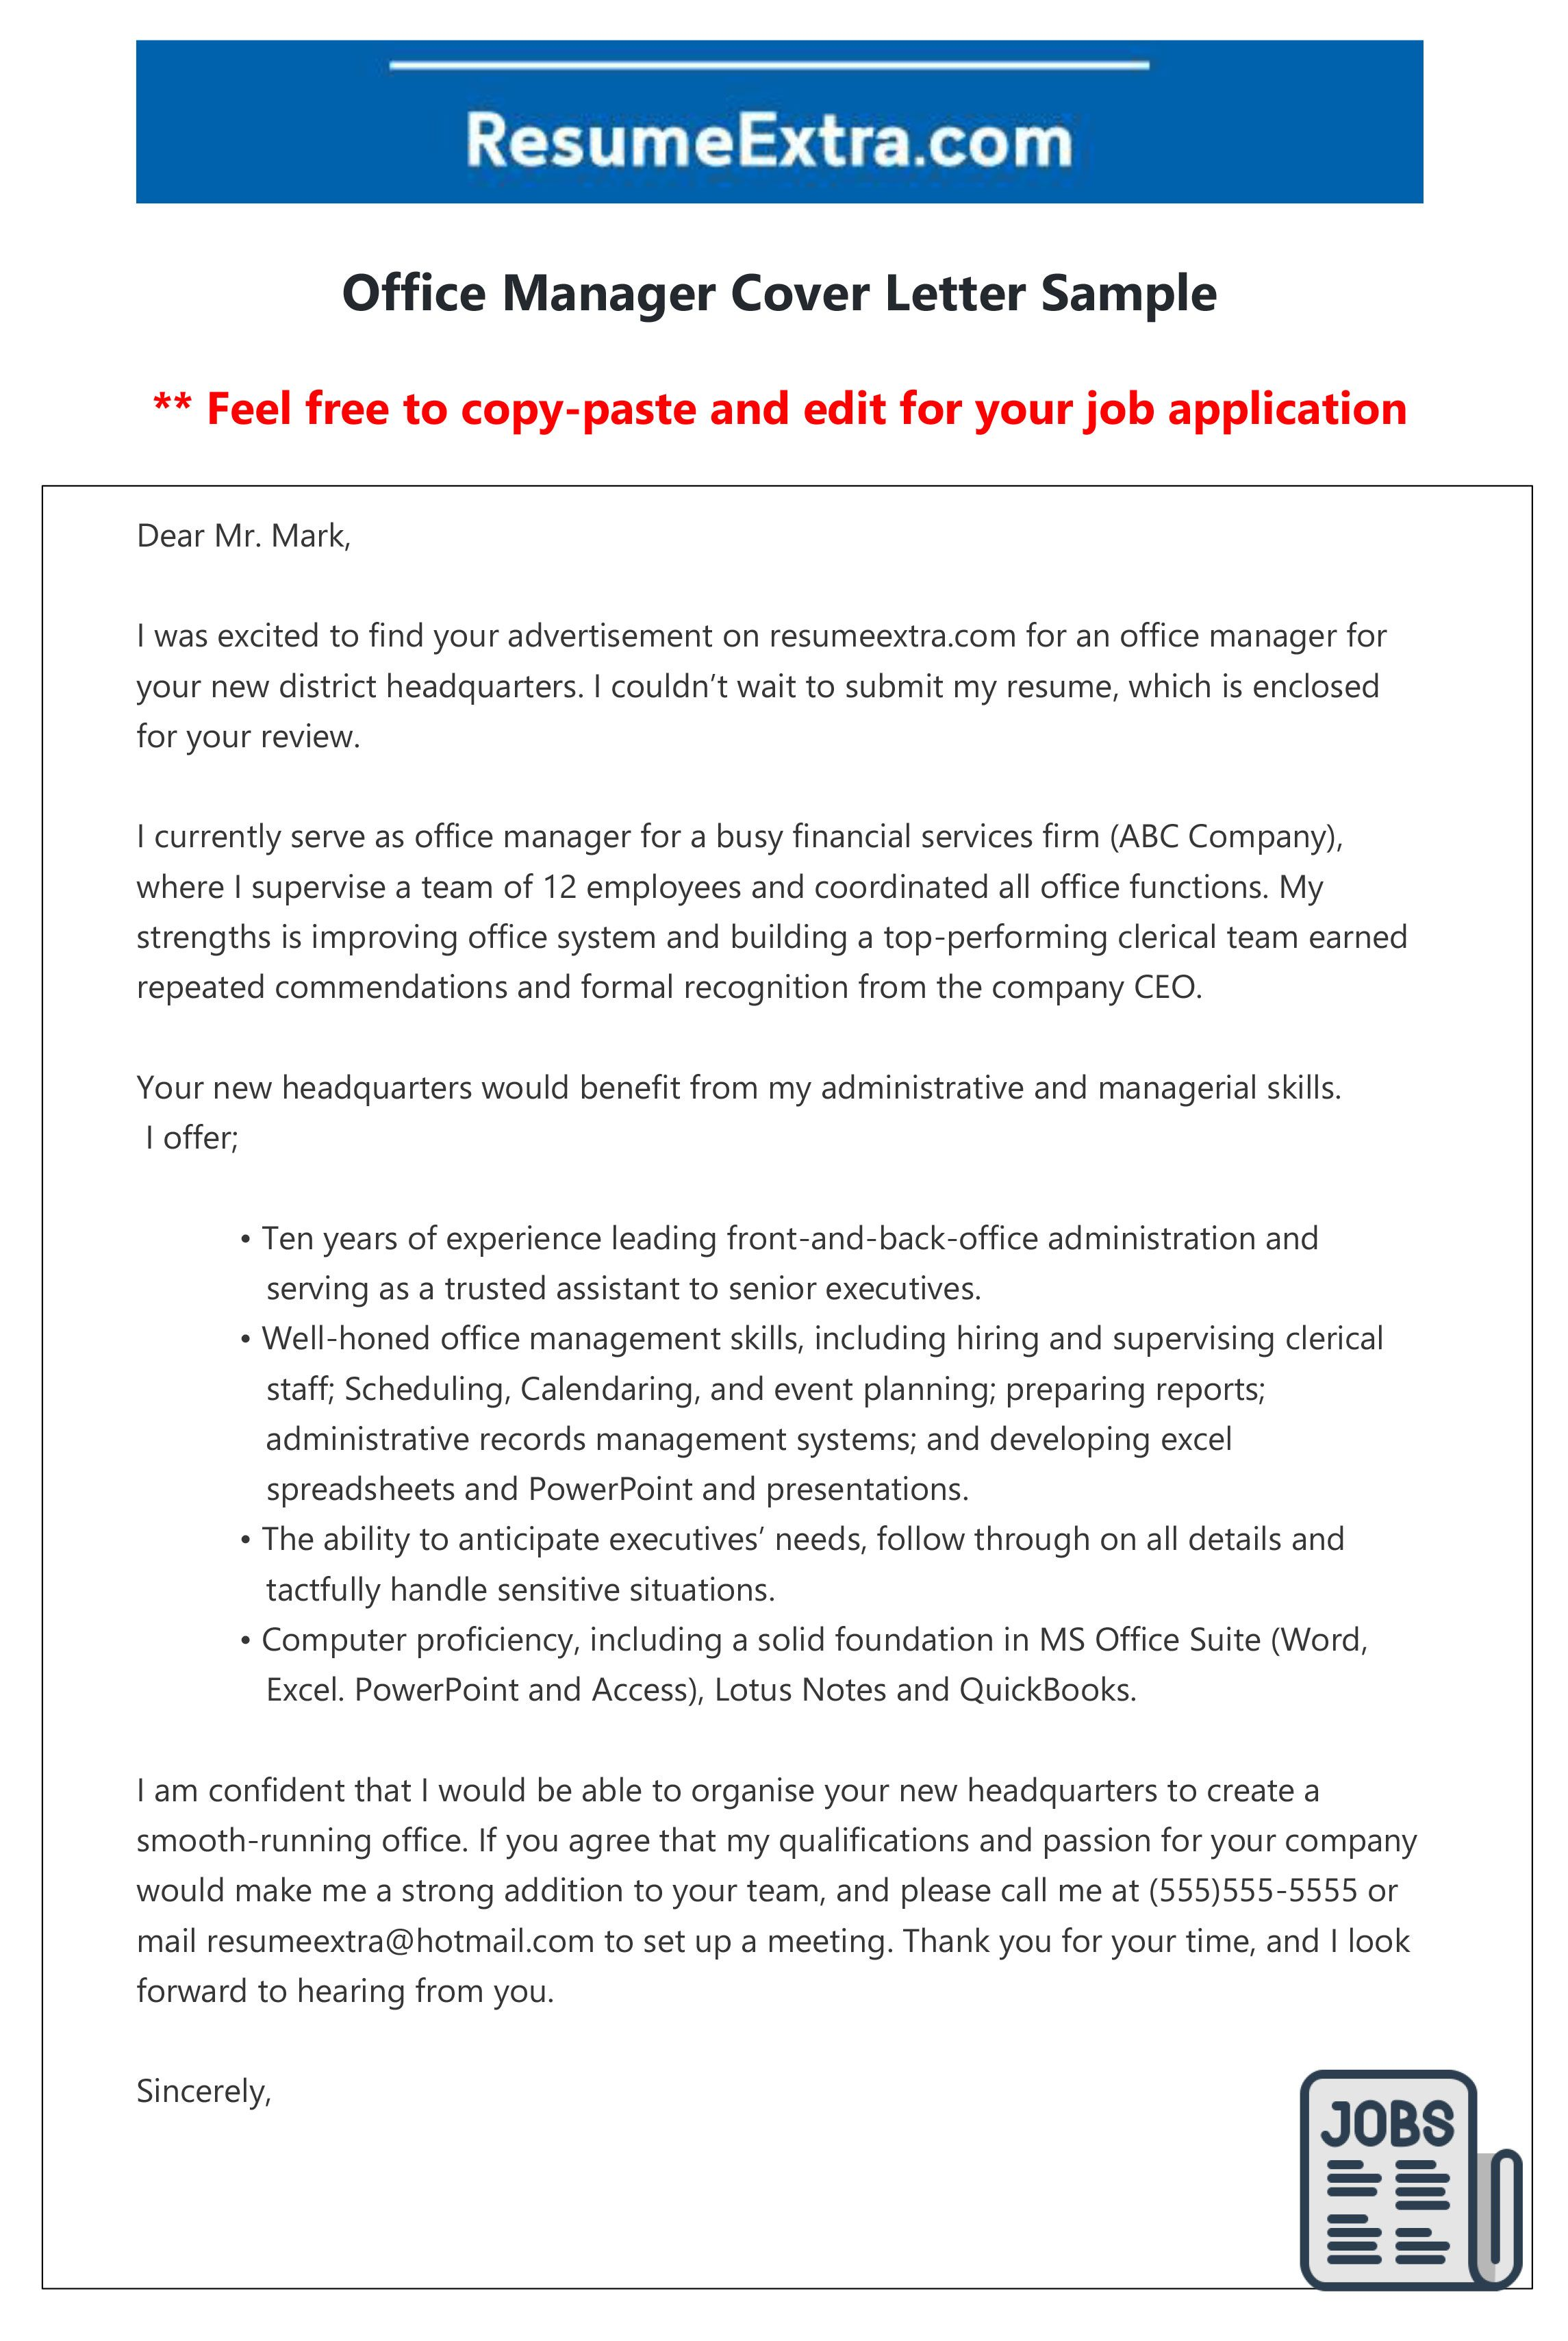 Free office manager cover letter sample, layout, template ...